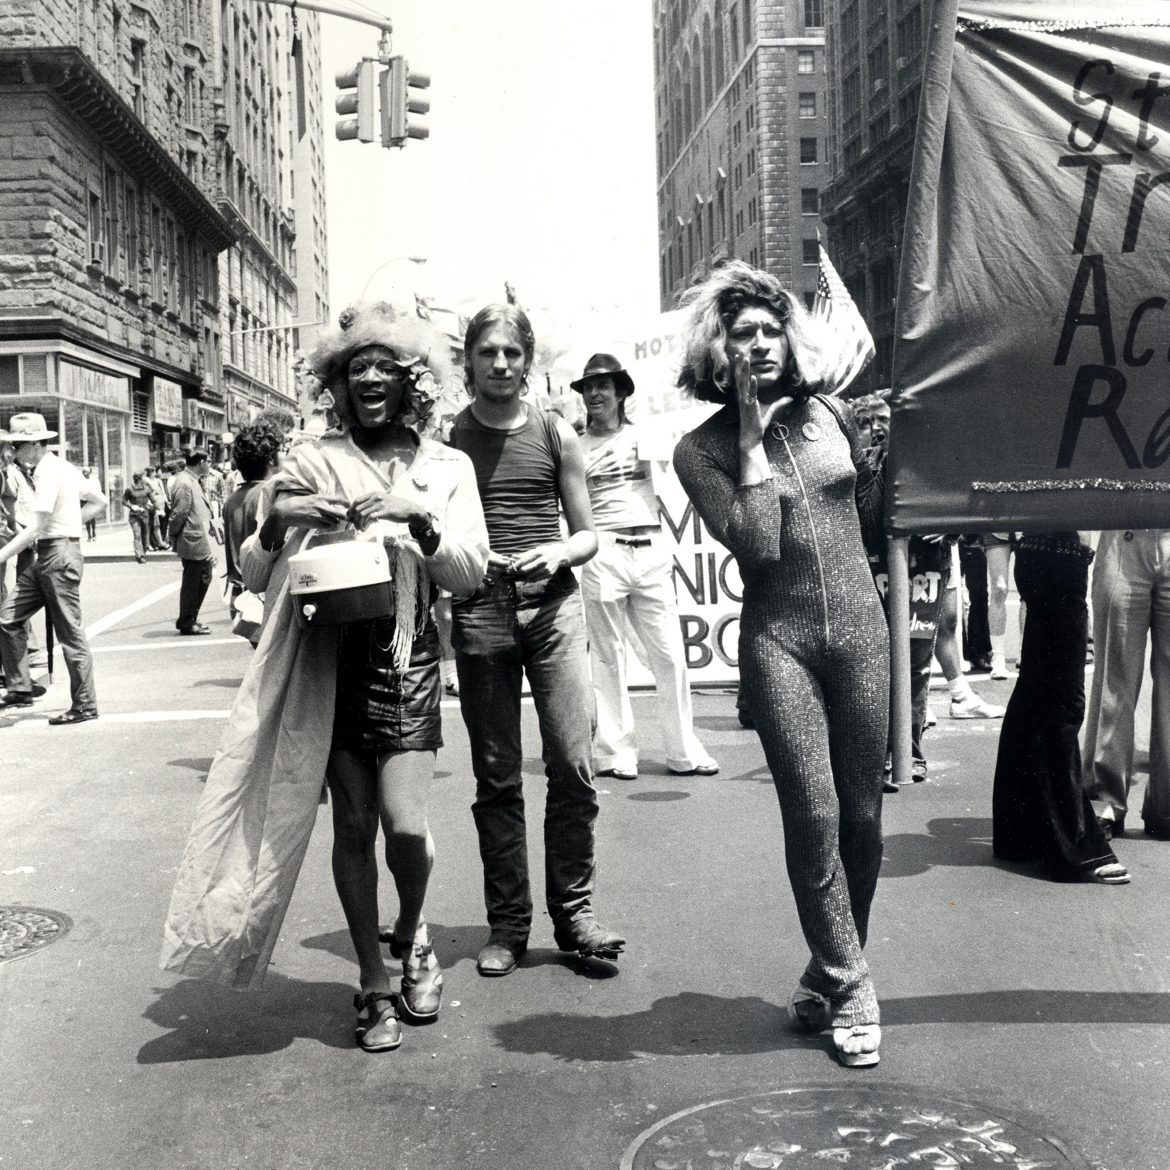 Marsha P. Johnson (left) and Sylvia Rivera (right), co-founders of the Street Transvestite Action Revolutionaries (STAR) at the Christopher Street Liberation Day Gay Pride Parade, New York City, June 24, 1973. Credit: Leonard Fink, courtesy LGBT Community Center National History Archive.